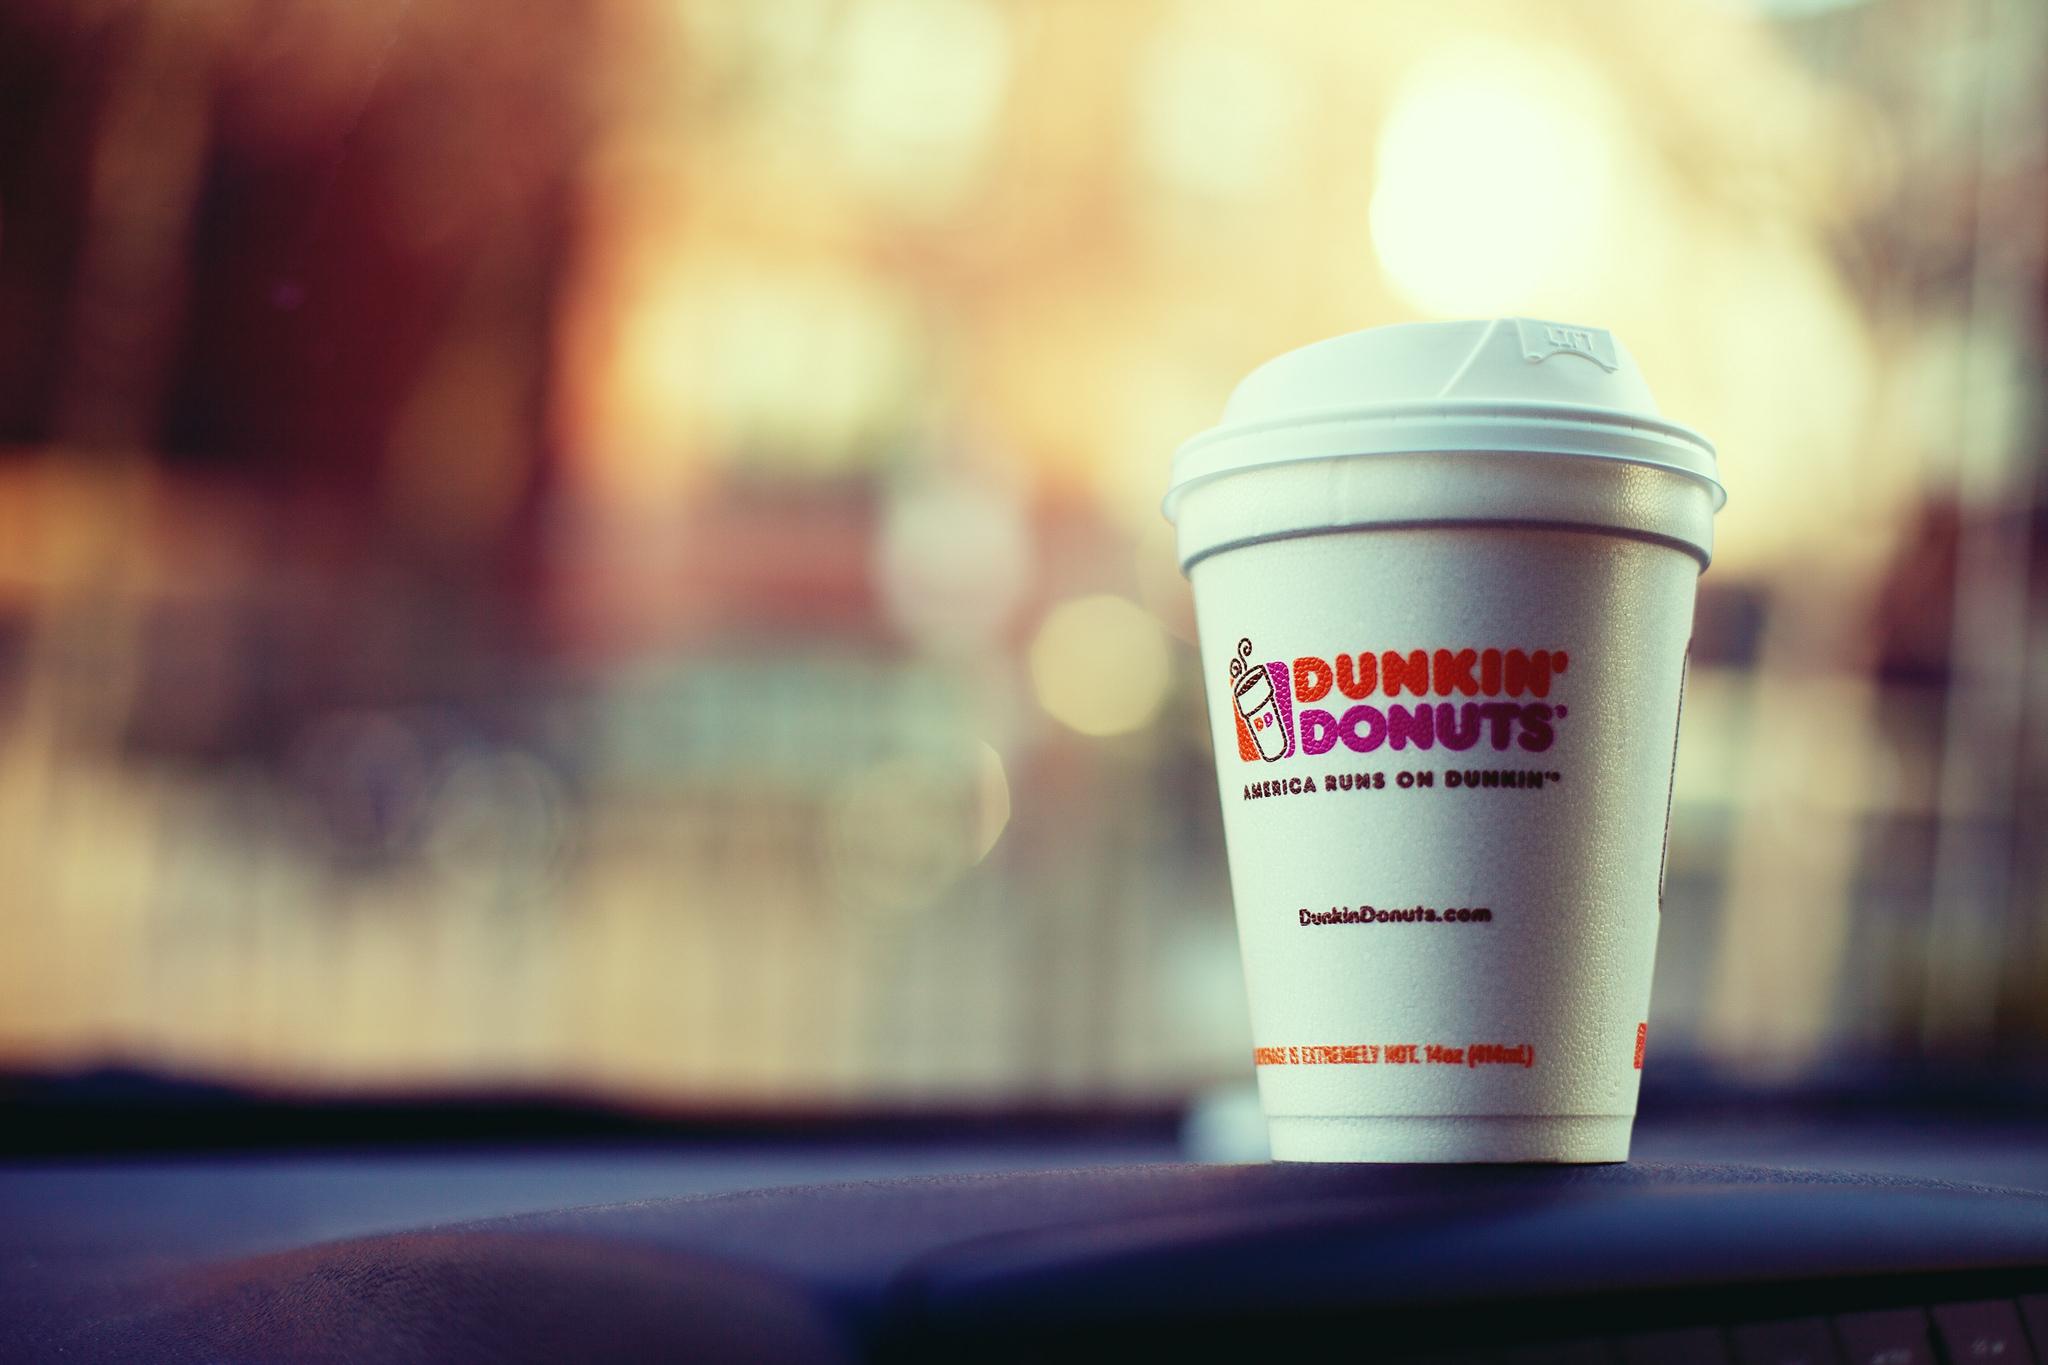 1 Dunkin Donuts Hd Wallpapers Backgrounds Wallpaper Abyss